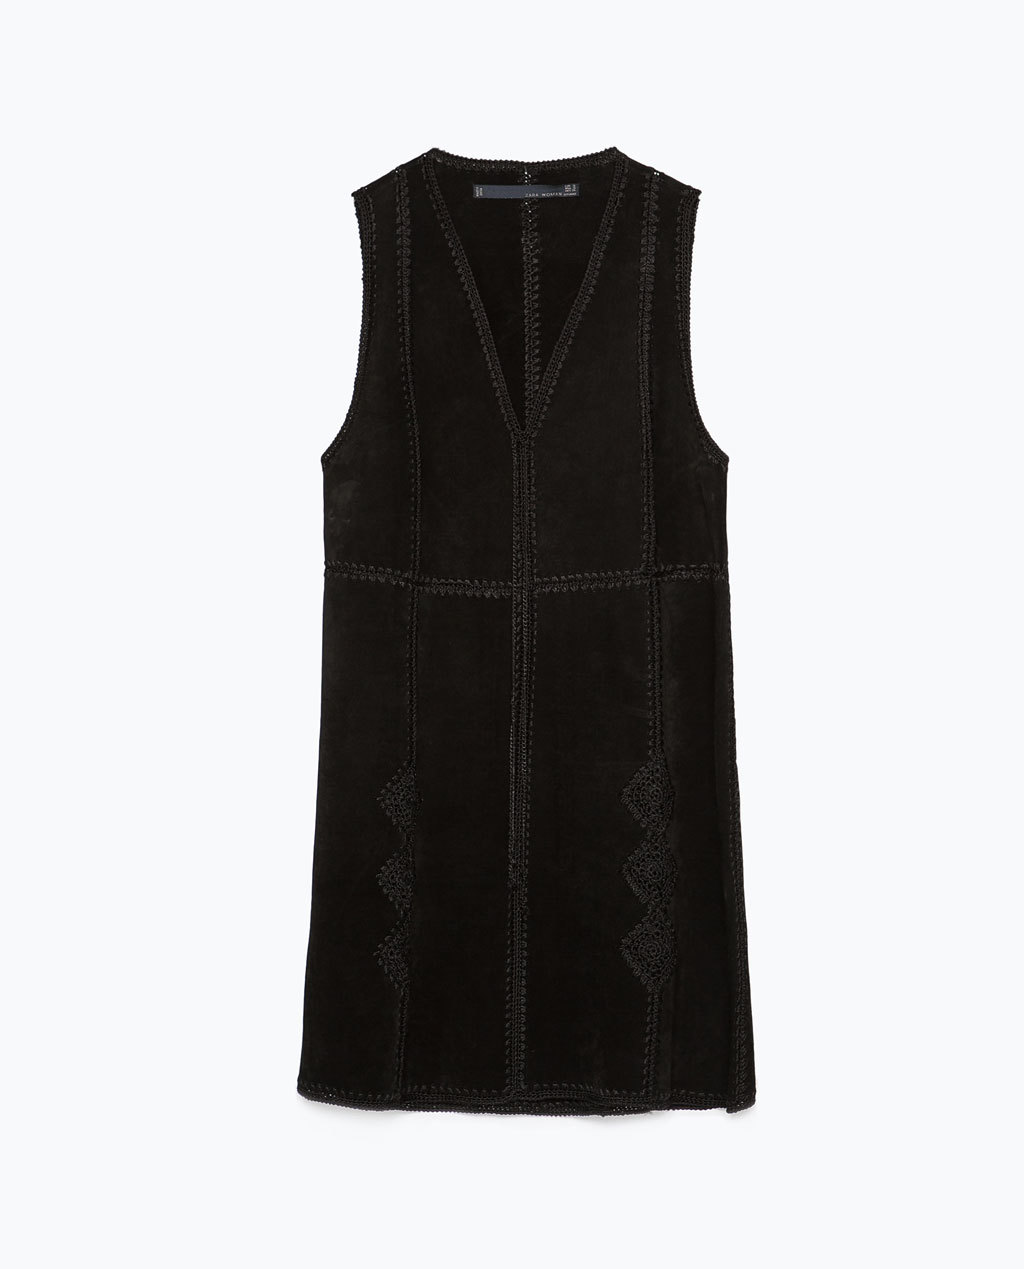 Suede Dress - style: shift; length: mid thigh; neckline: low v-neck; pattern: plain; sleeve style: sleeveless; predominant colour: black; occasions: casual; fit: straight cut; fibres: leather - 100%; sleeve length: sleeveless; pattern type: fabric; texture group: suede; embellishment: embroidered; season: s/s 2015; wardrobe: highlight; embellishment location: hip